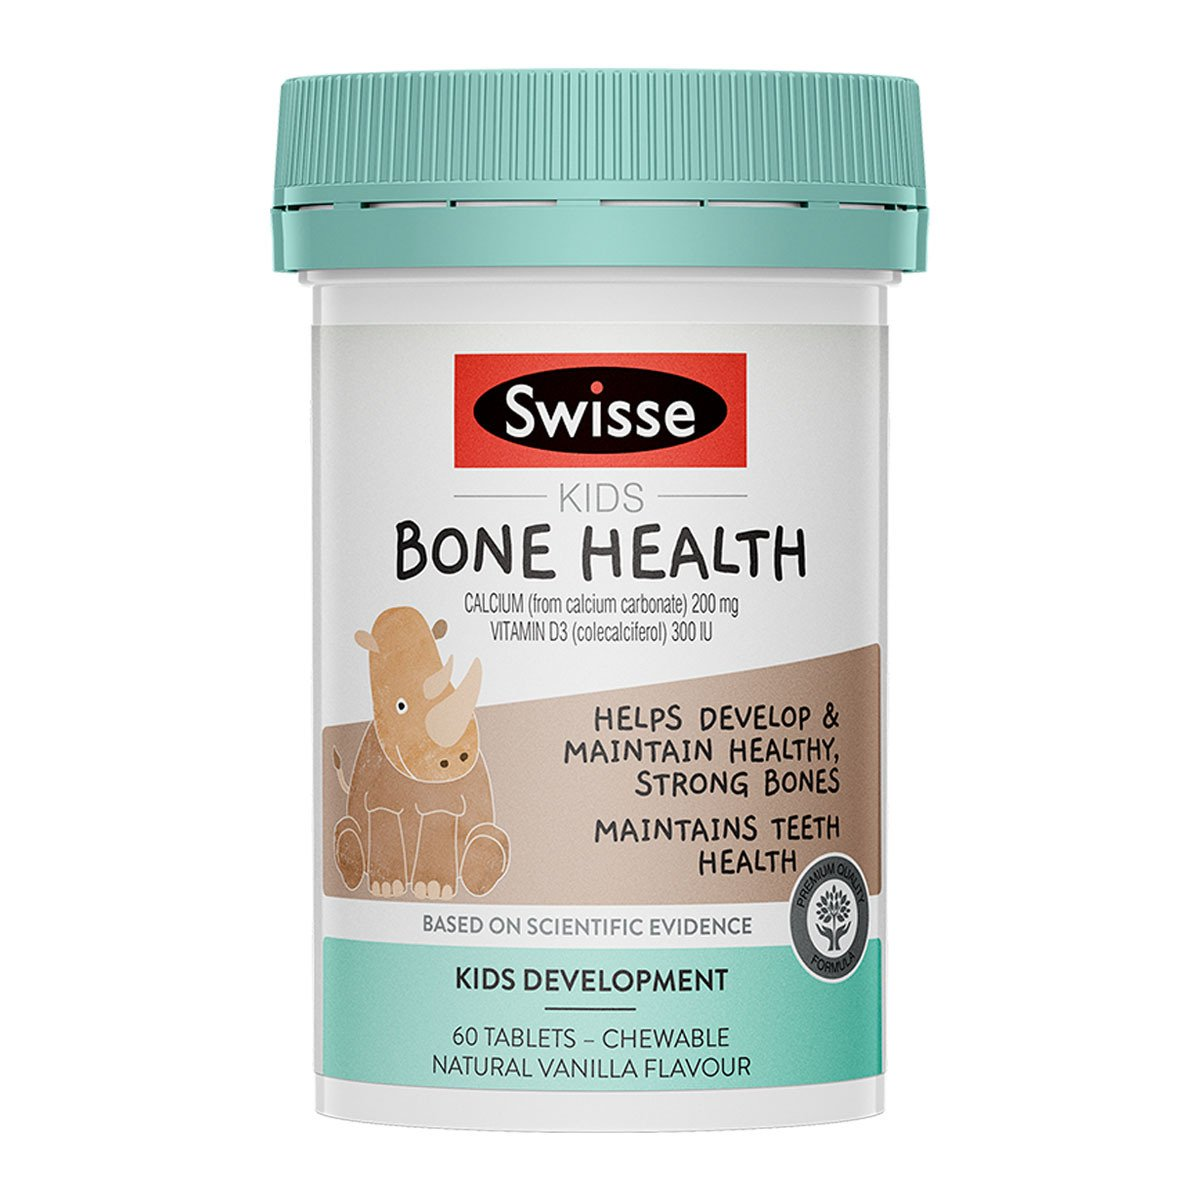 Pack shot of Swisse Product kids bone health 60 tablets - chewable